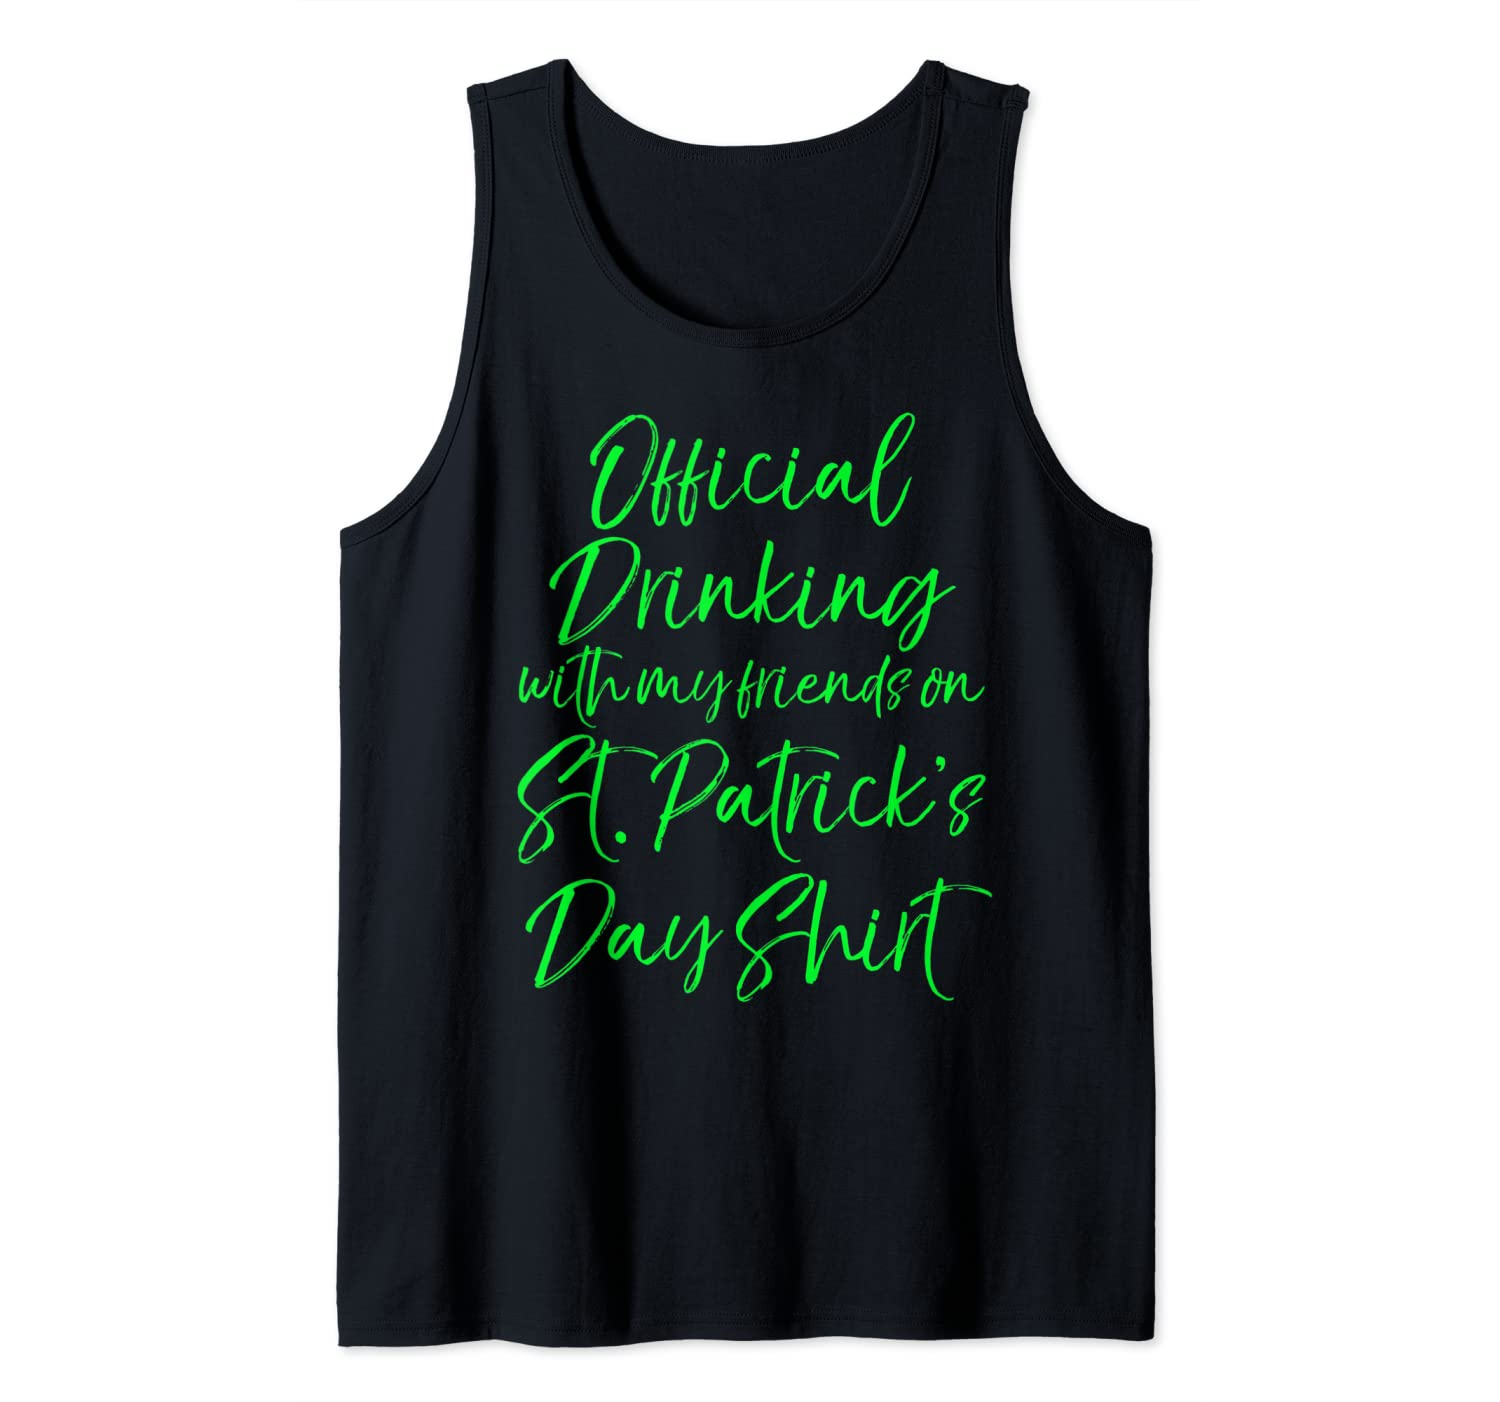 Official Drinking with My Friends on St. Patrick's Day Shirt Tank Top